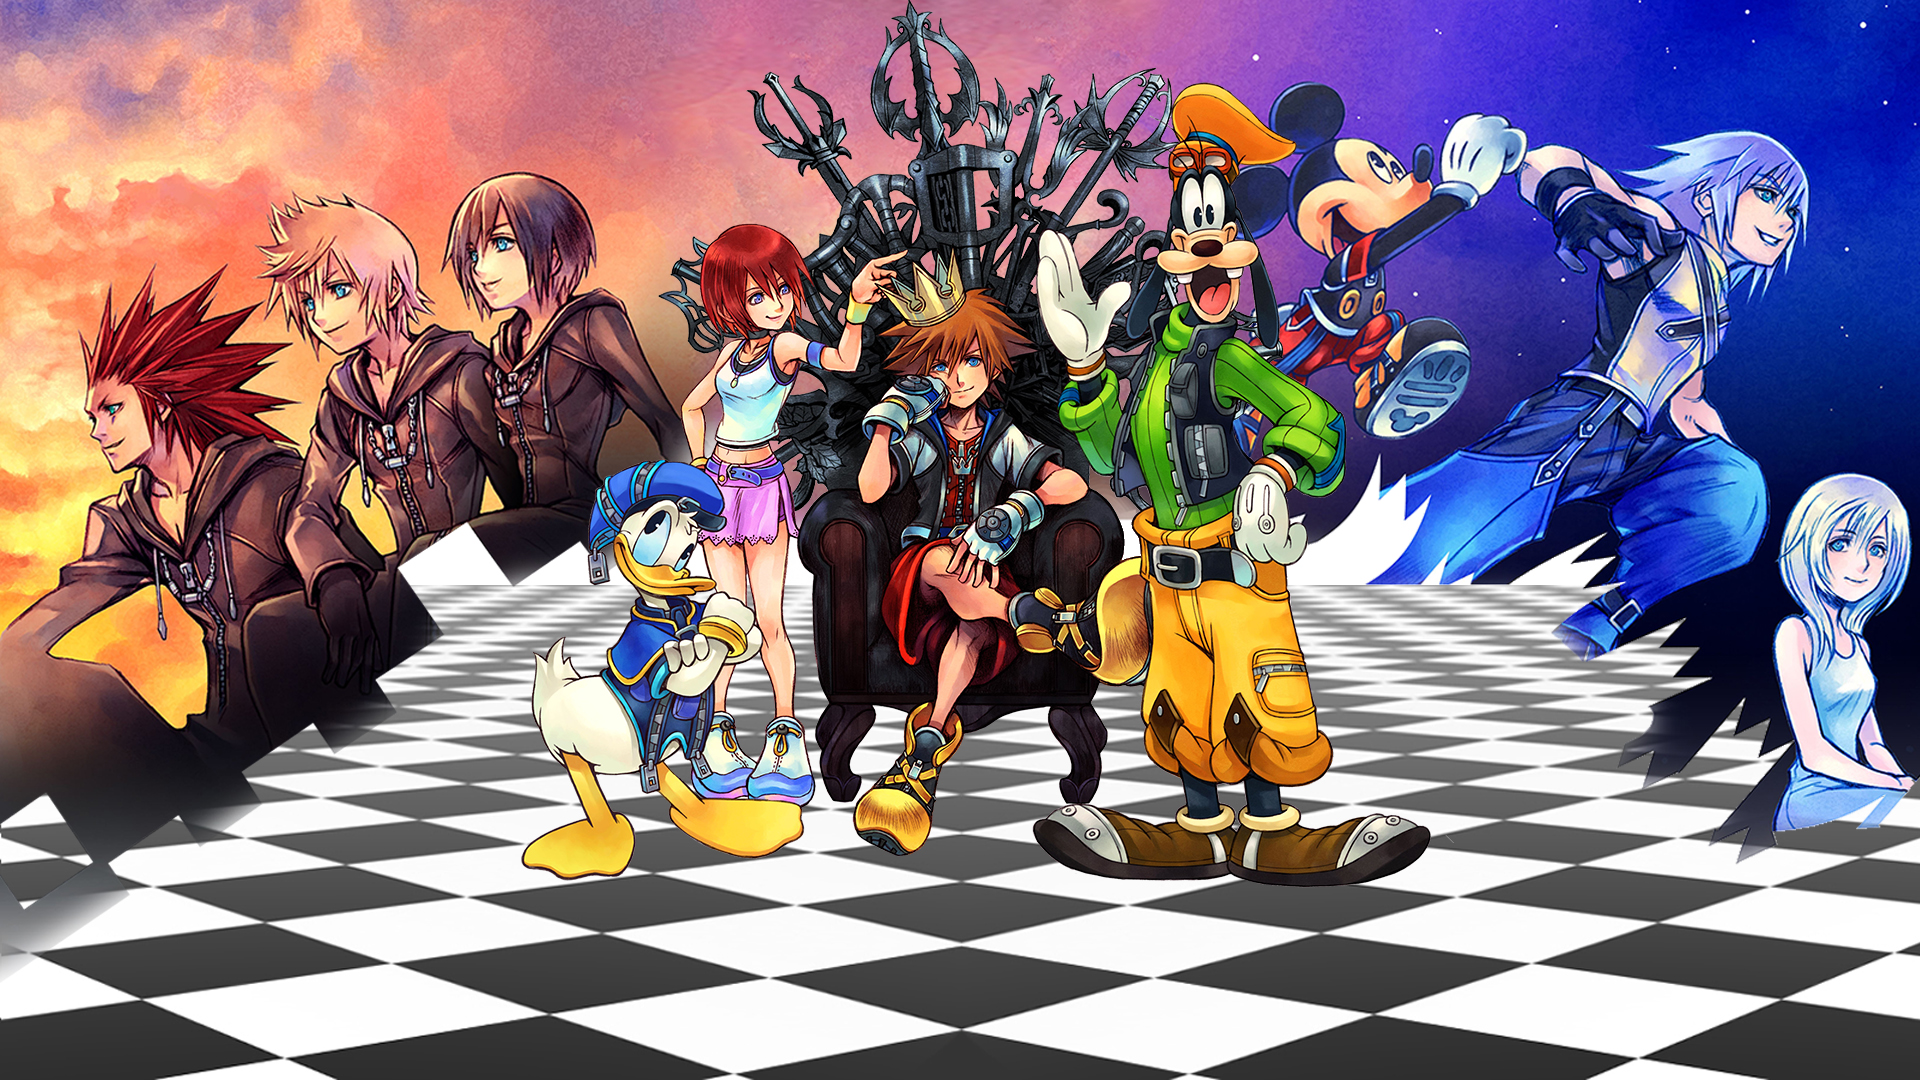 What Kingdom Hearts Games Do You Really Need To Play Before